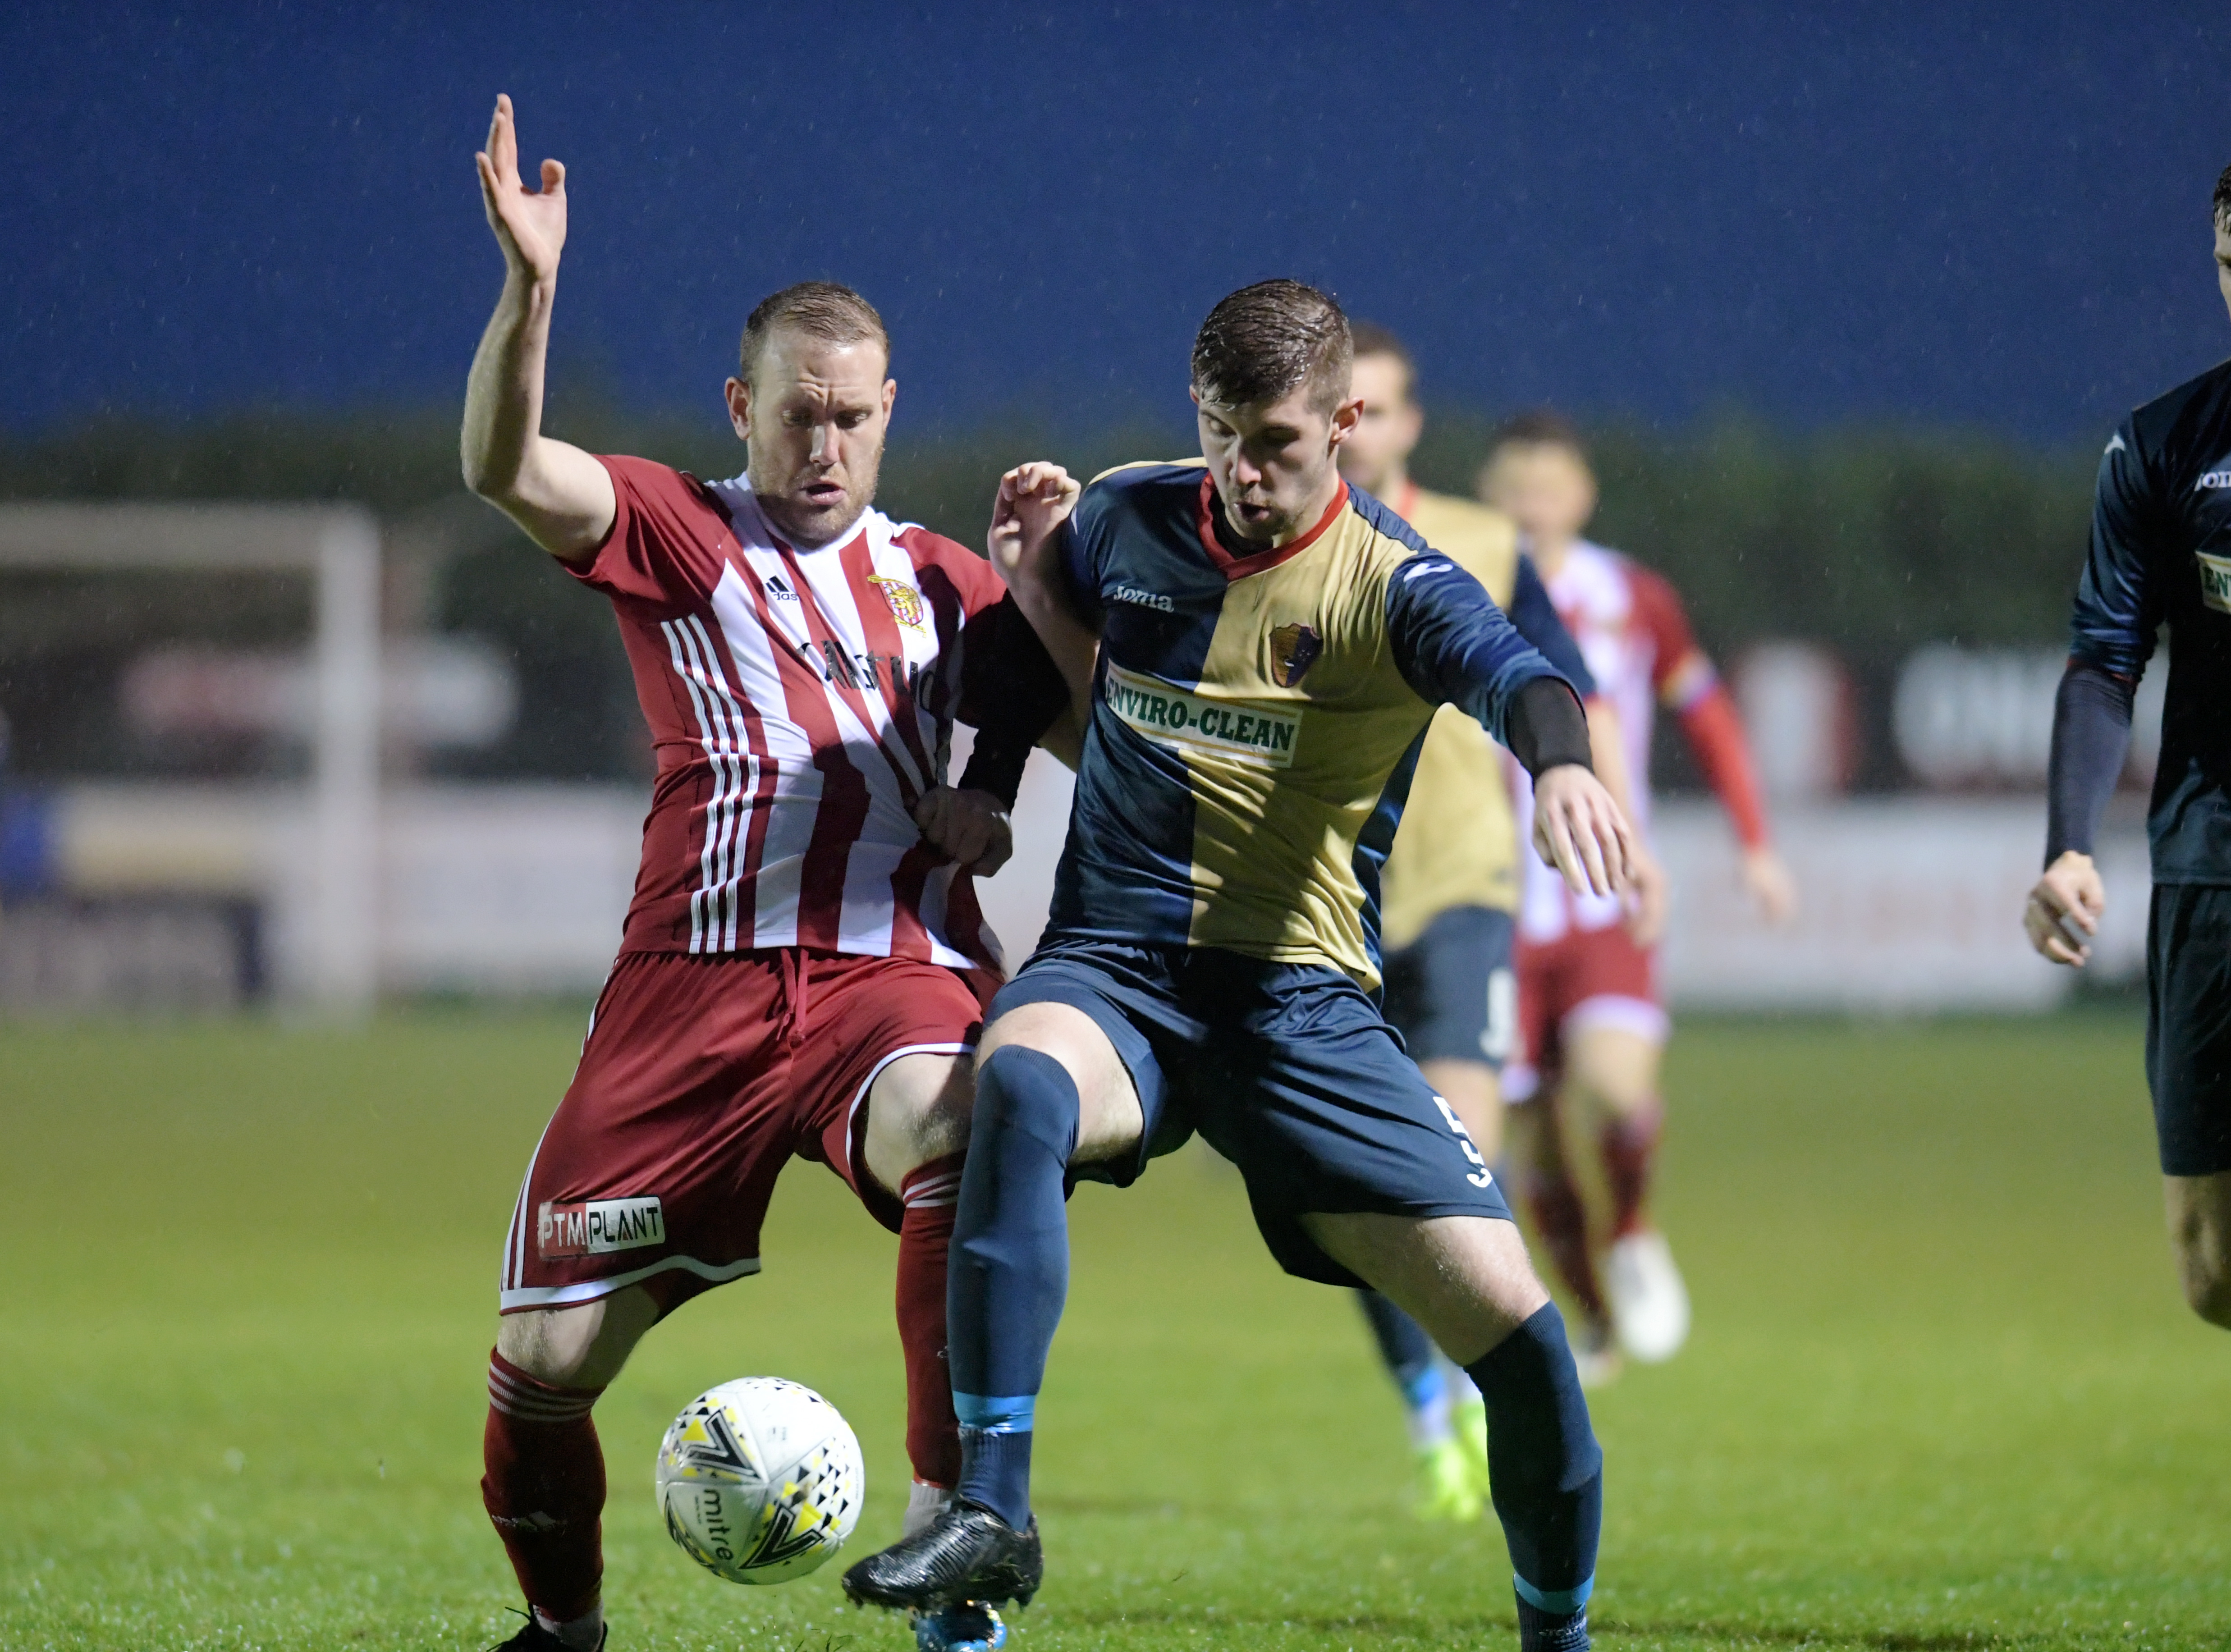 Formartine's Garry Wood and East Kilbride's Sam Fisher.  Picture by Kath Flannery